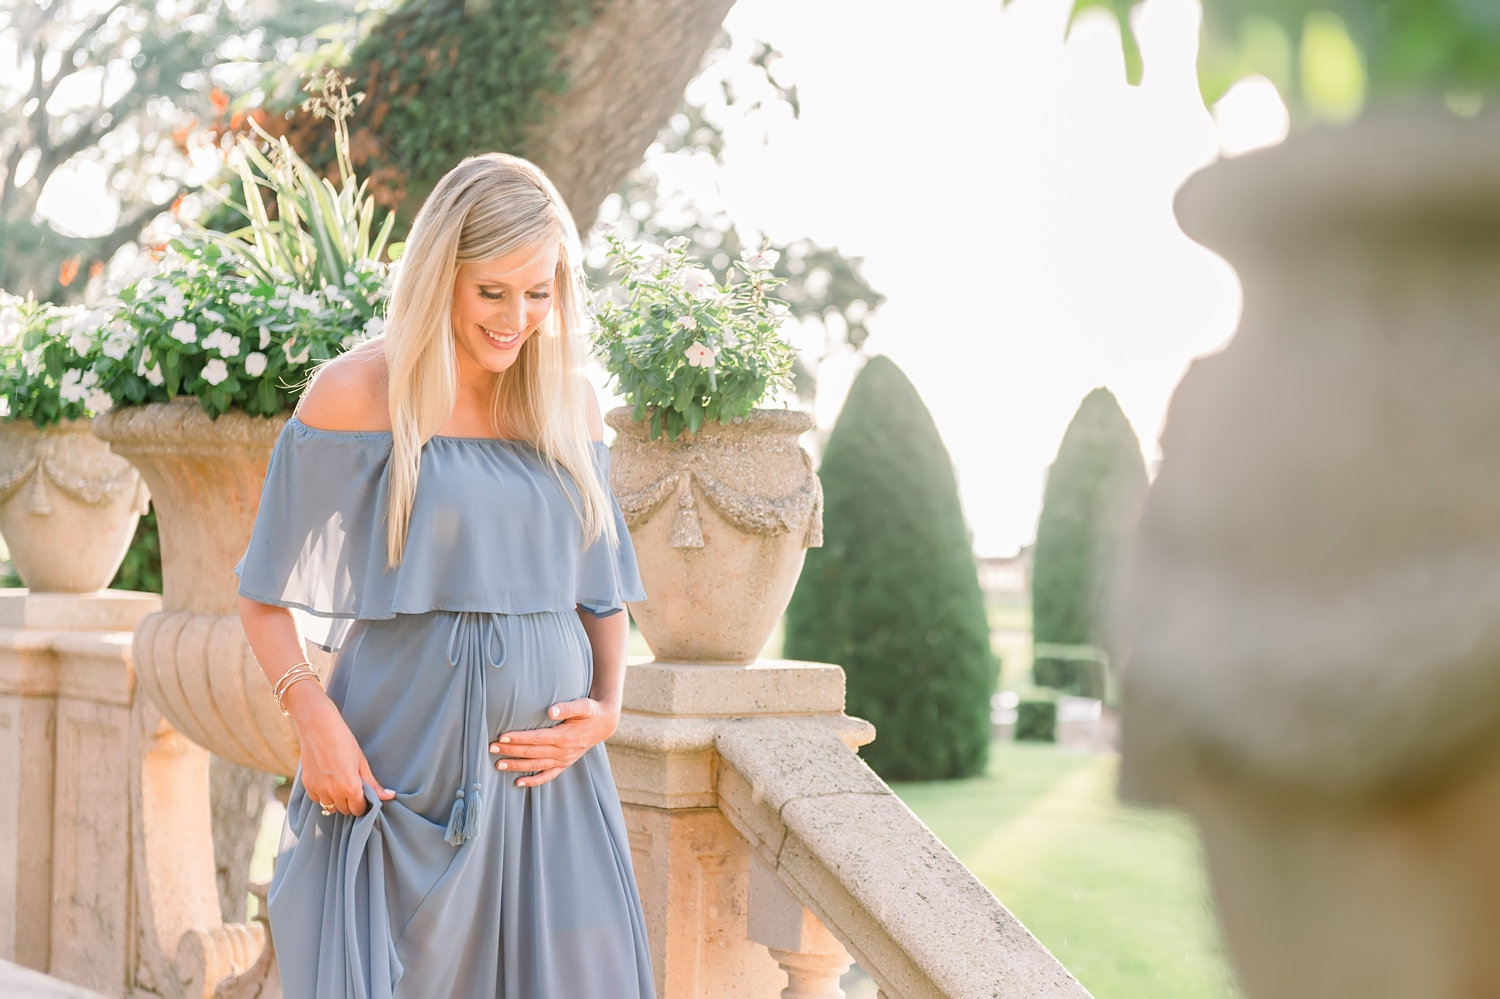 pregnant mother to be with long blonde hair, she is wearing a strapless light blue gown, beautiful manicured garden grounds